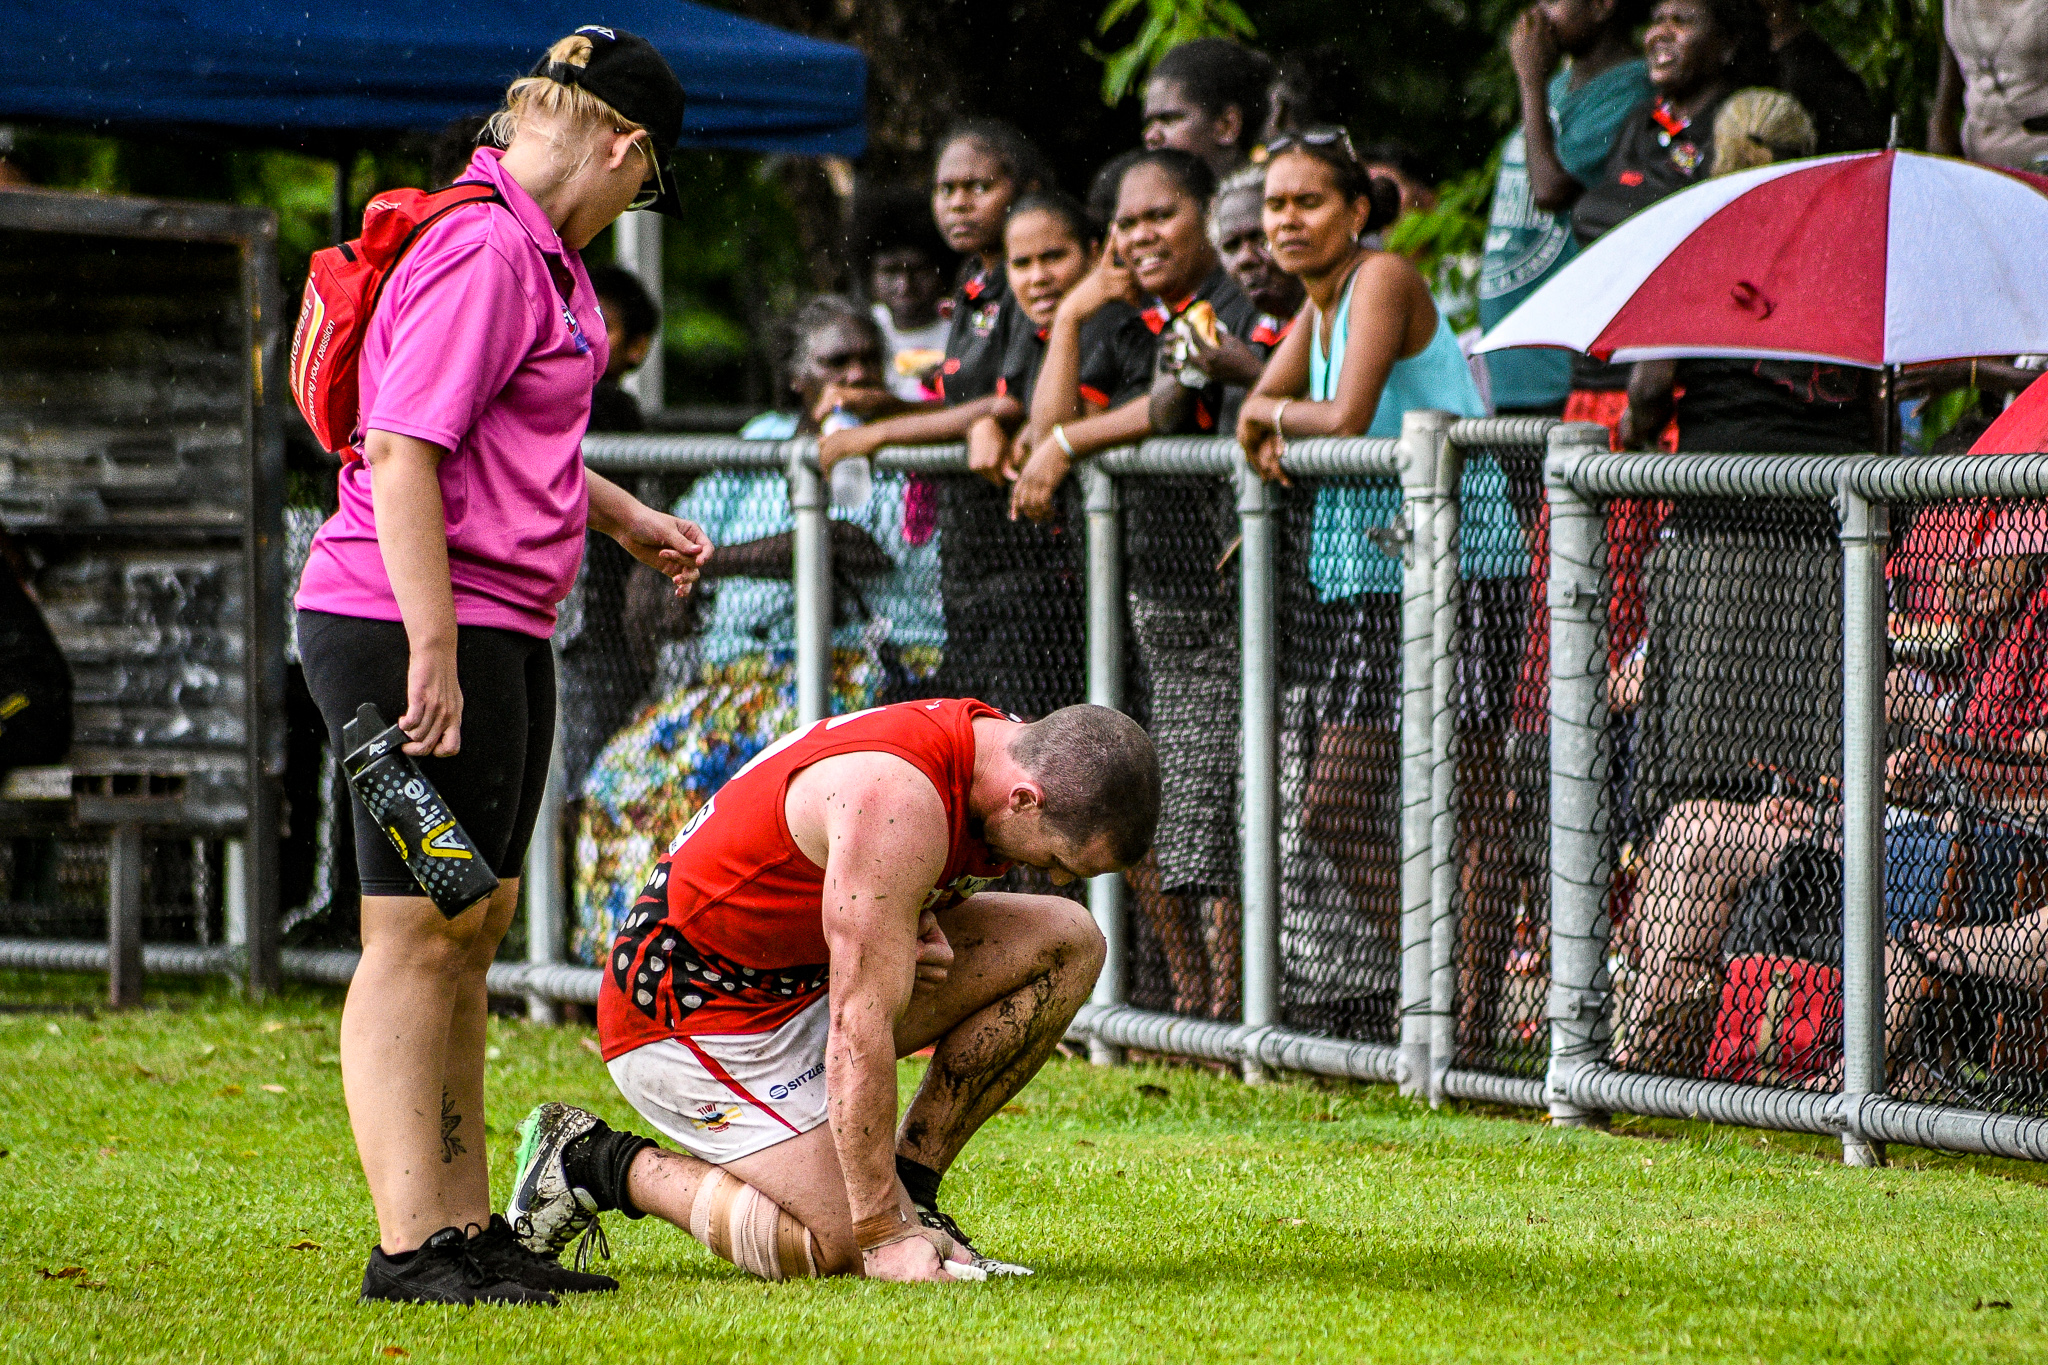 Bombers trainer Shileigh Martin is called upon (again) to treat Hams as he struggles toward the bench against Nightcliff